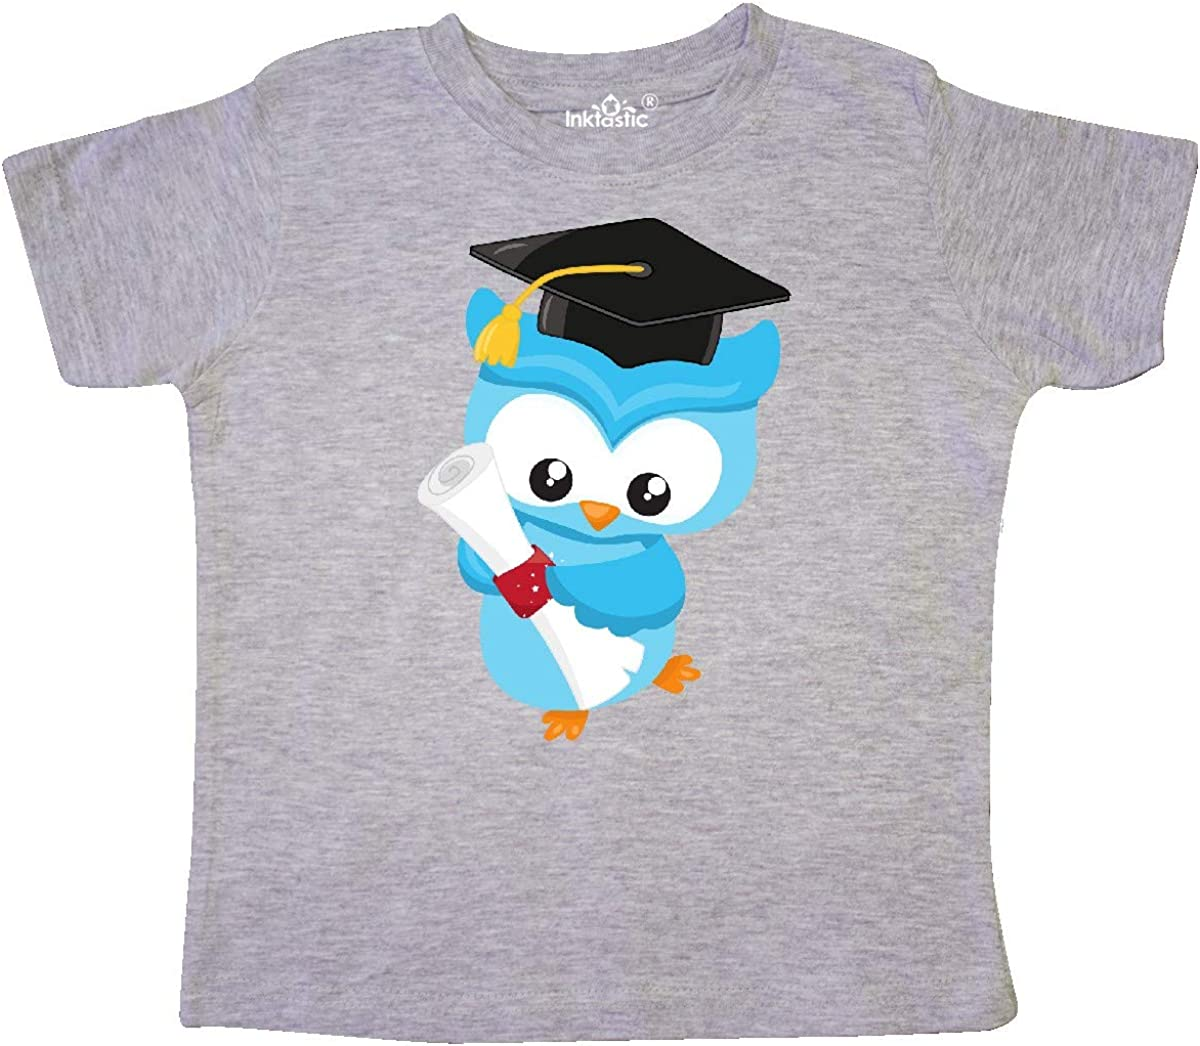 inktastic Blue Owl with Graduation Hat and a Diploma Toddler T-Shirt